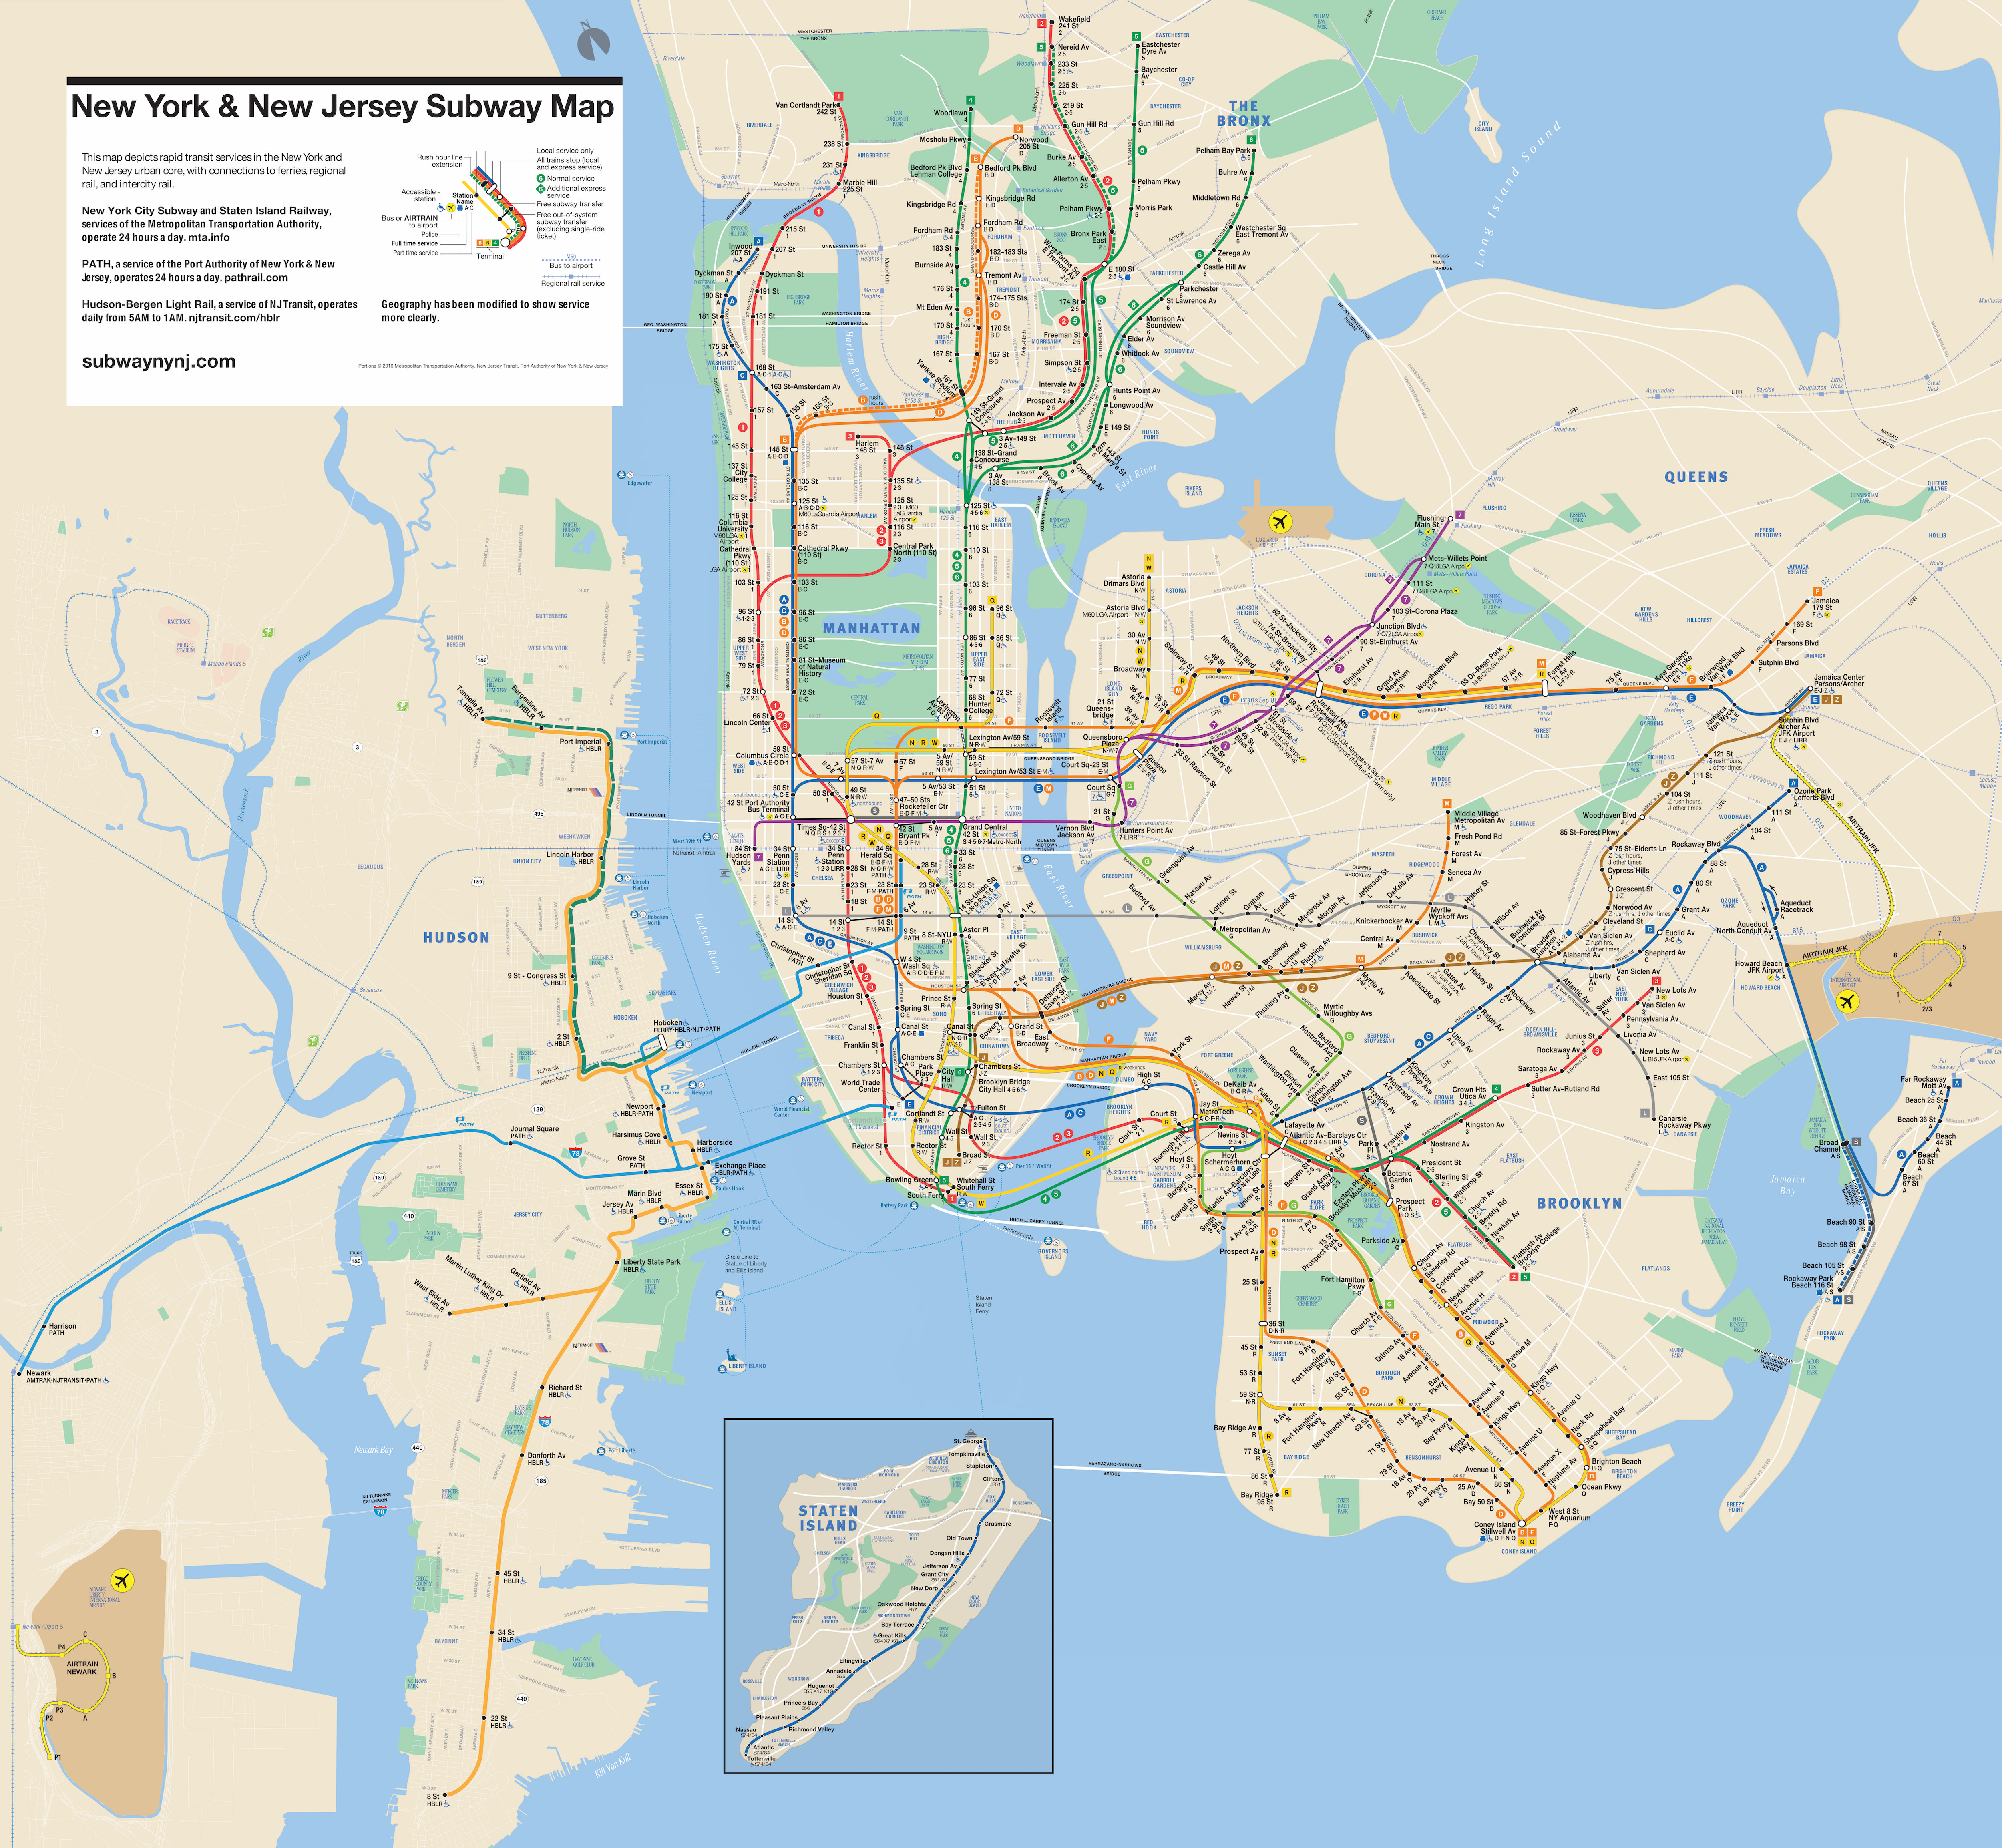 New York & New Jersey Subway Map